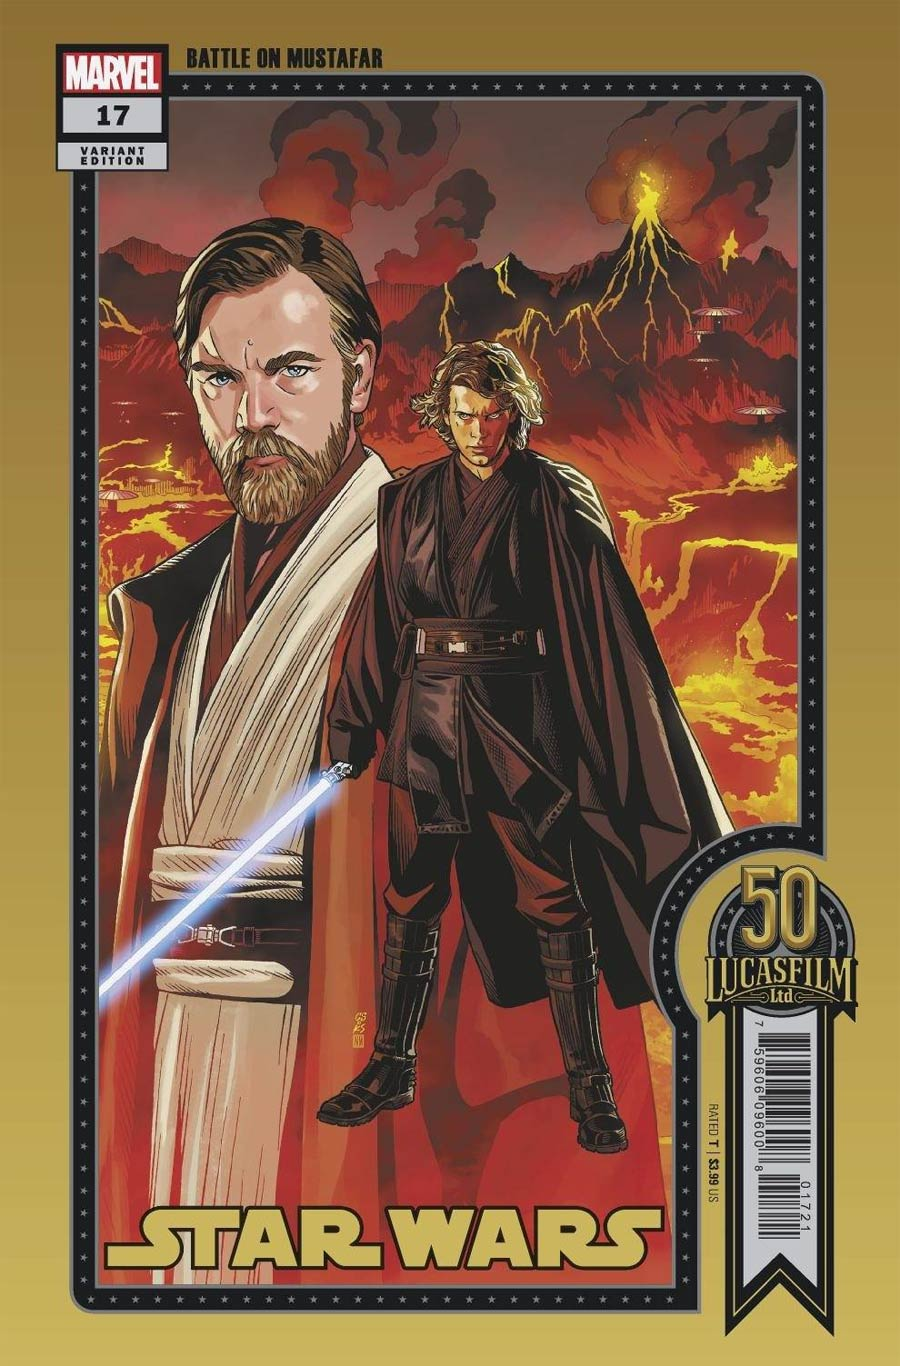 Star Wars Vol 5 #17 Cover C Variant Chris Sprouse LucasFilm 50th Anniversary Cover (War Of The Bounty Hunters Tie-In)